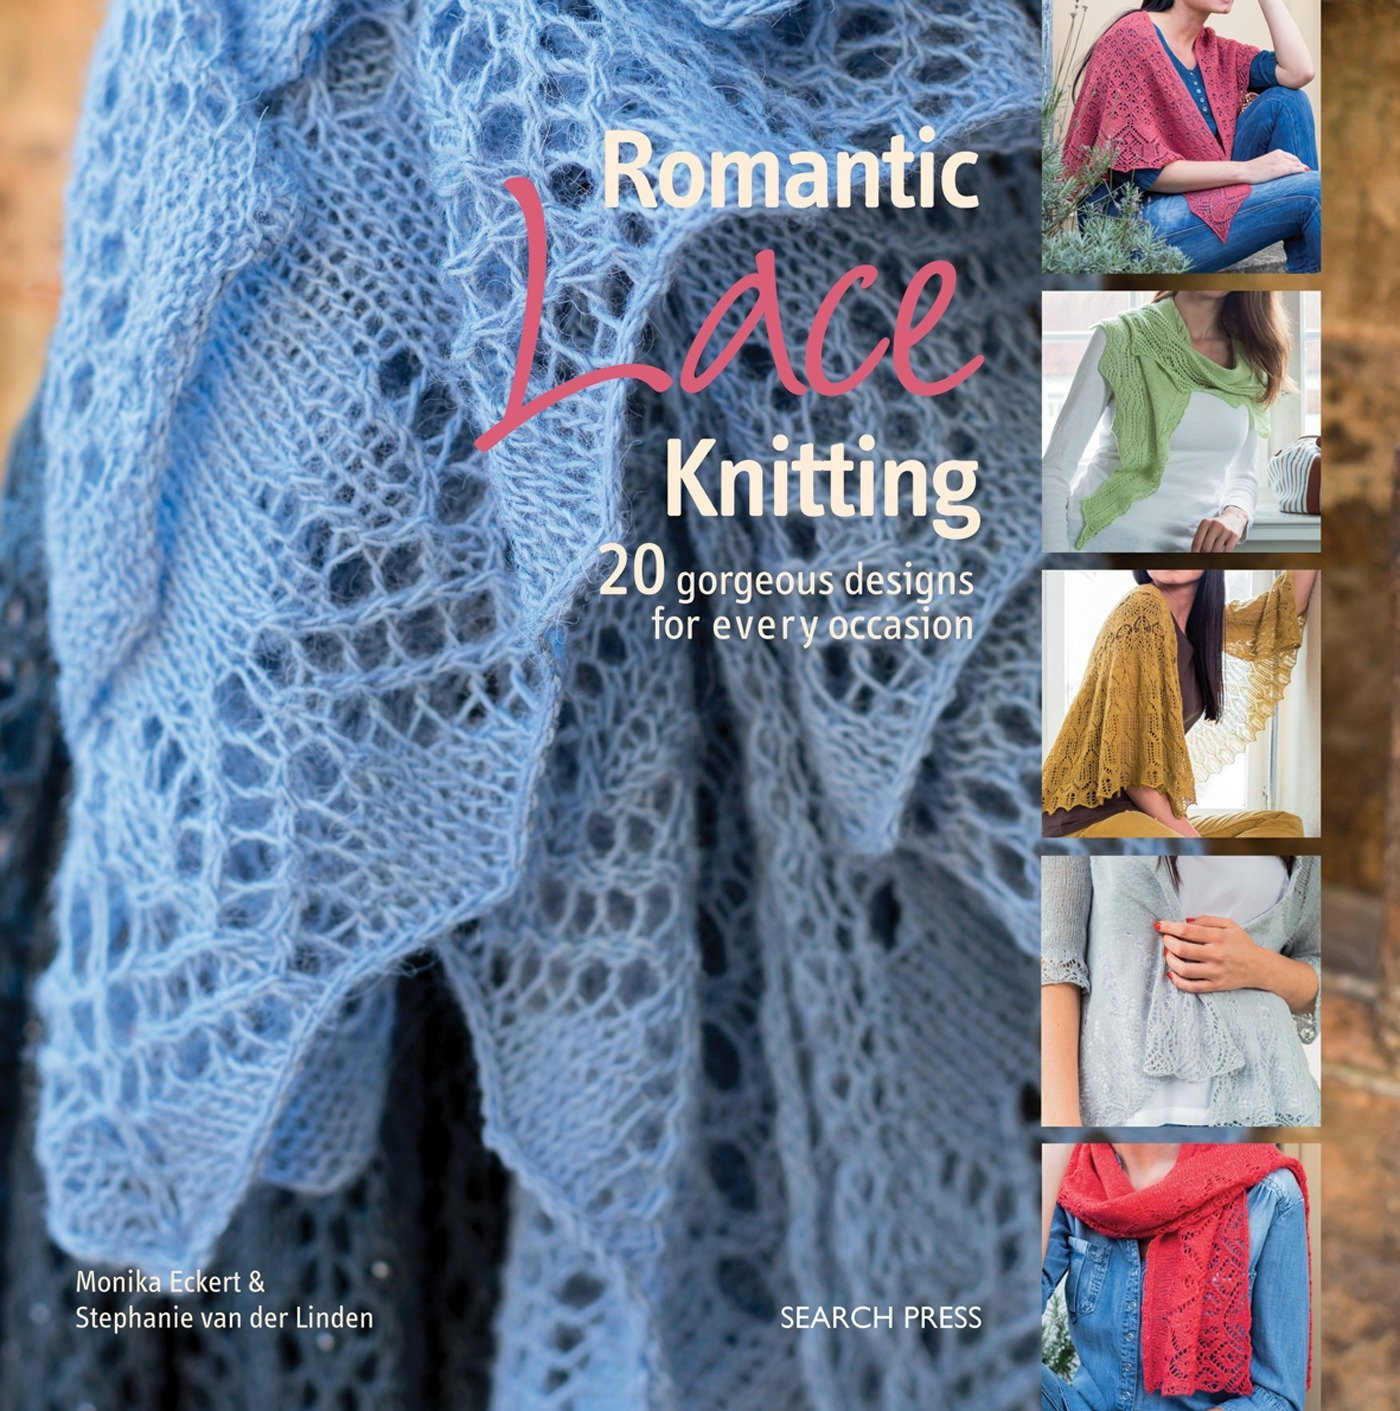 Romantic Lace Knitting 20 Gorgeous Designs For Every Occasion